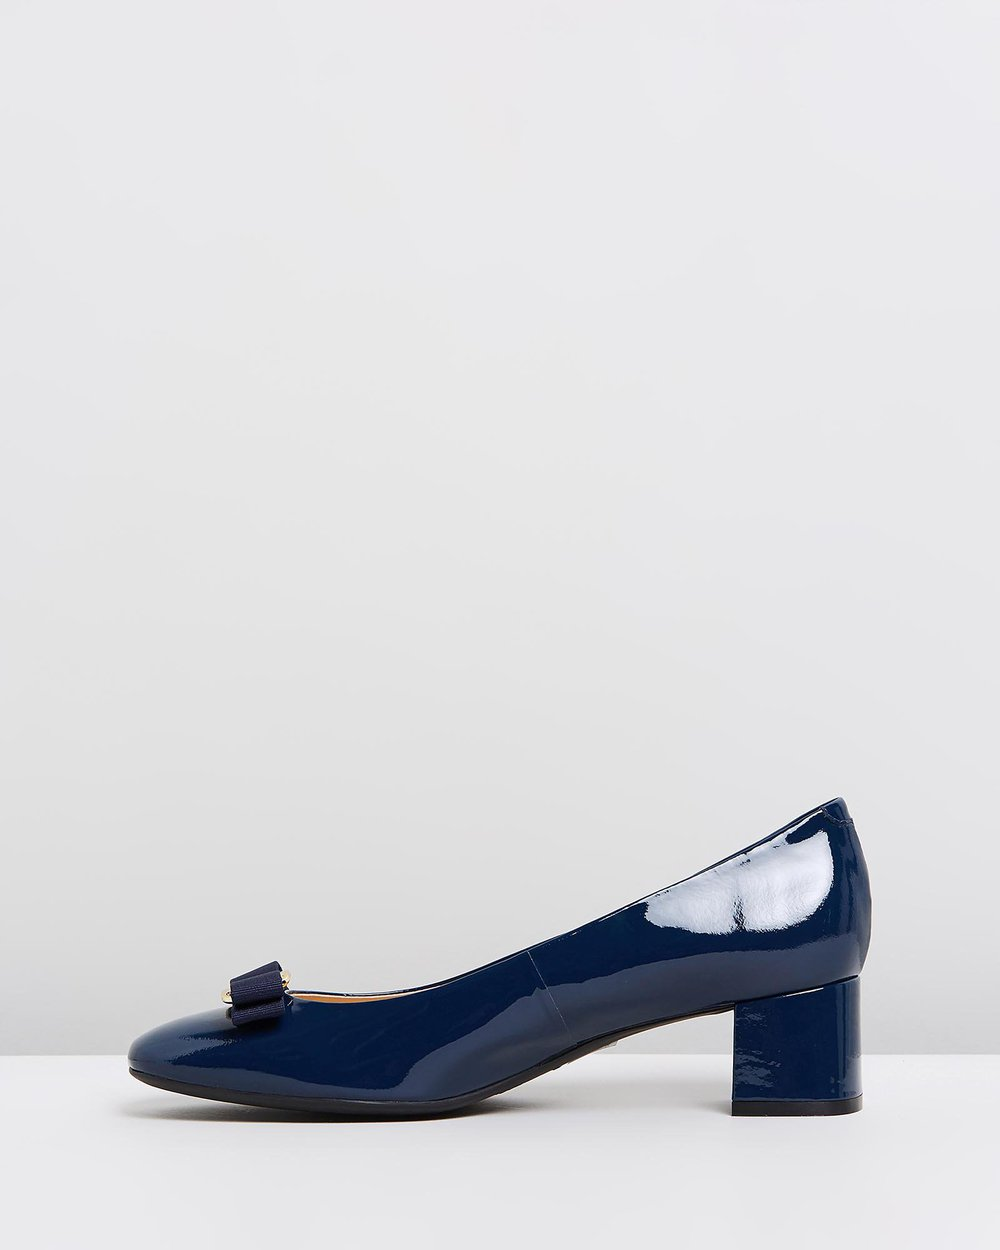 Rosey - Navy Patent